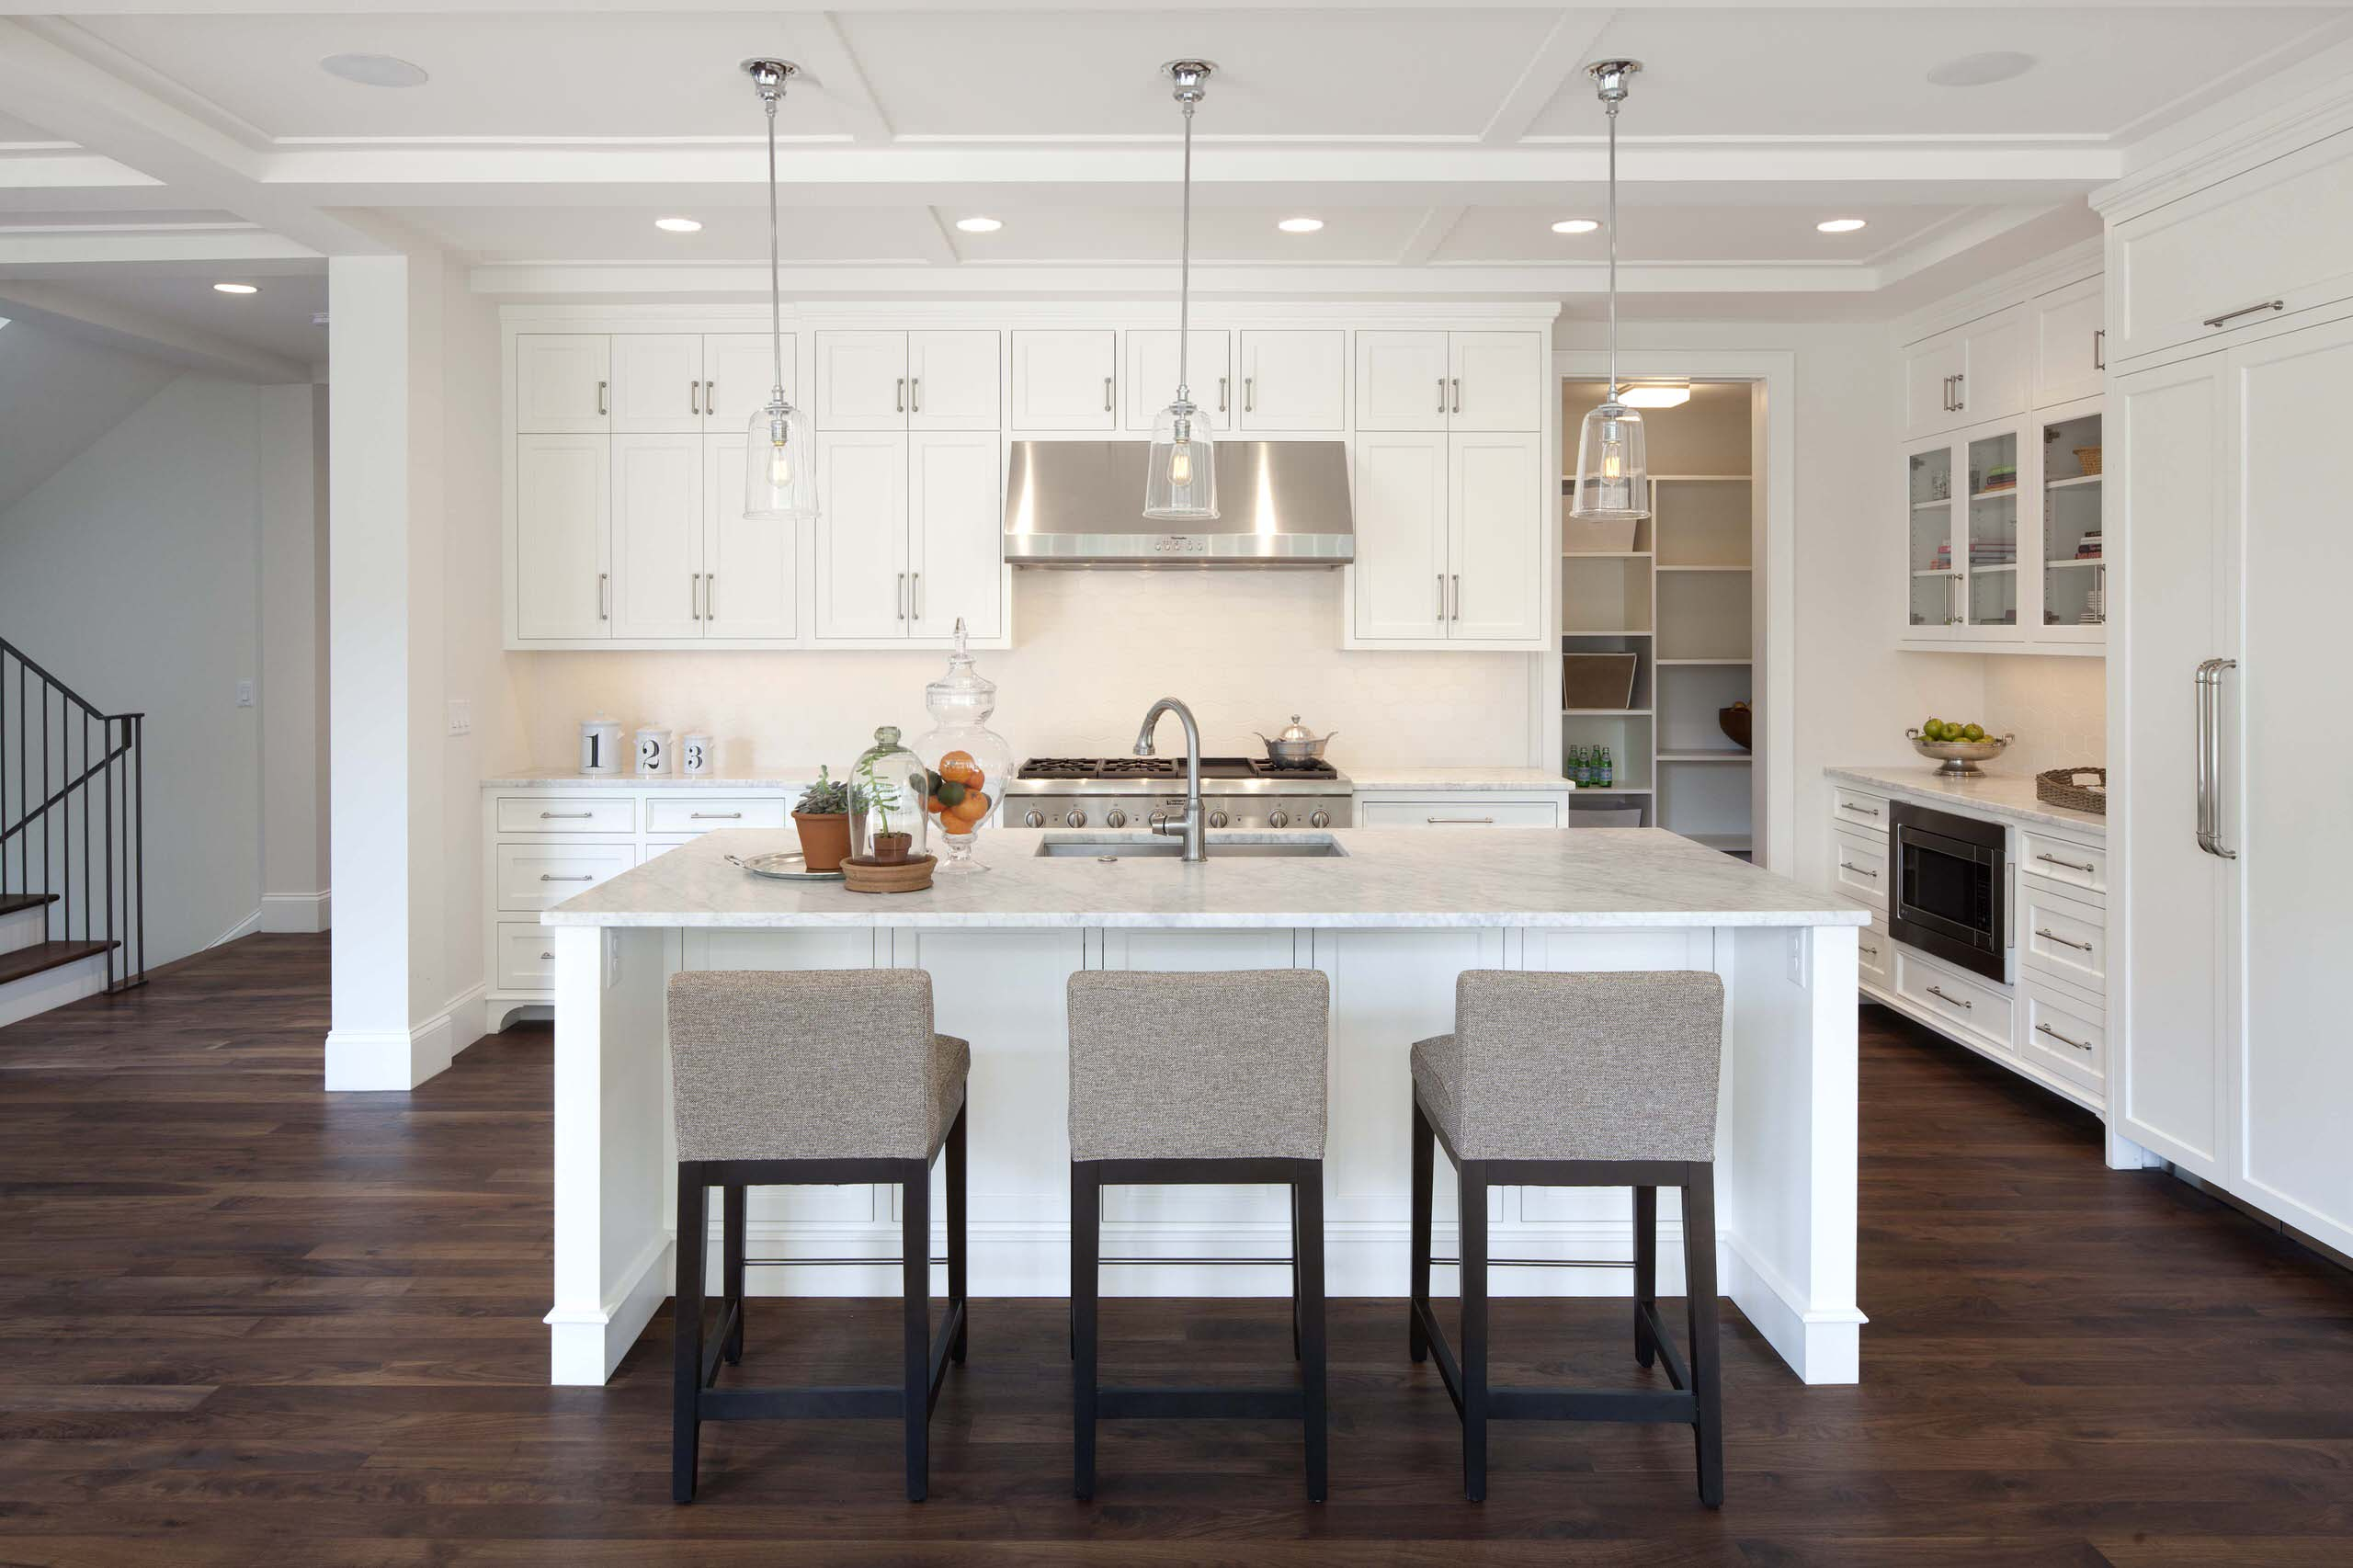 Place Minimalist White Kitchen Island with Grey Lather Stools on Hardwood Flooring near White Cabinets